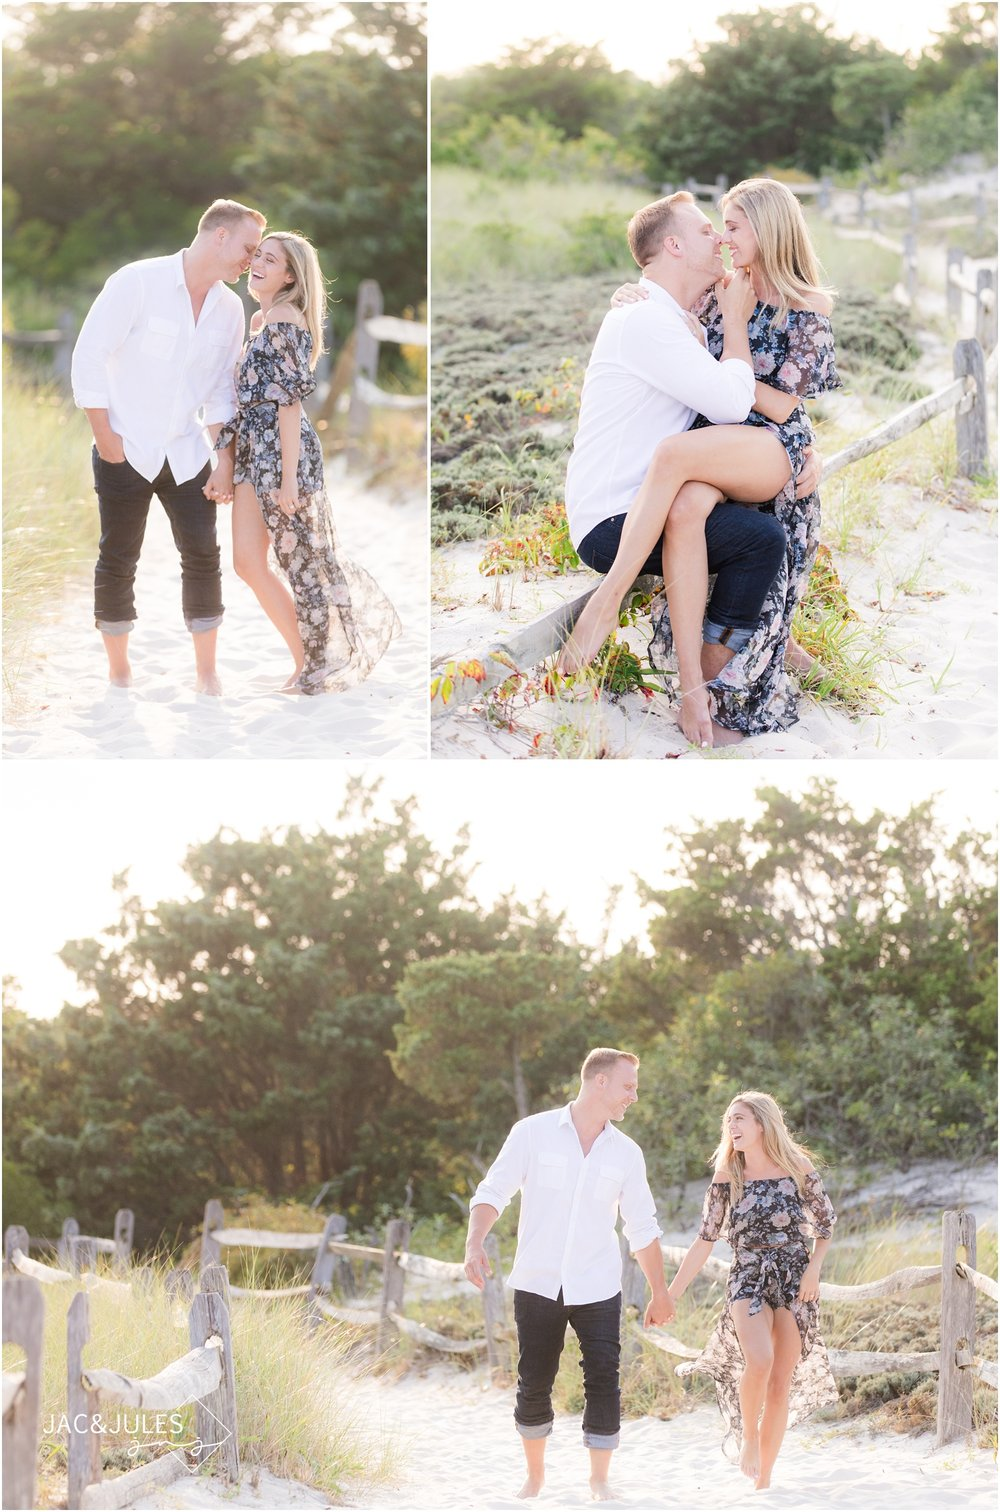 fun engagement photos on the beach in Seaside Park, NJ.